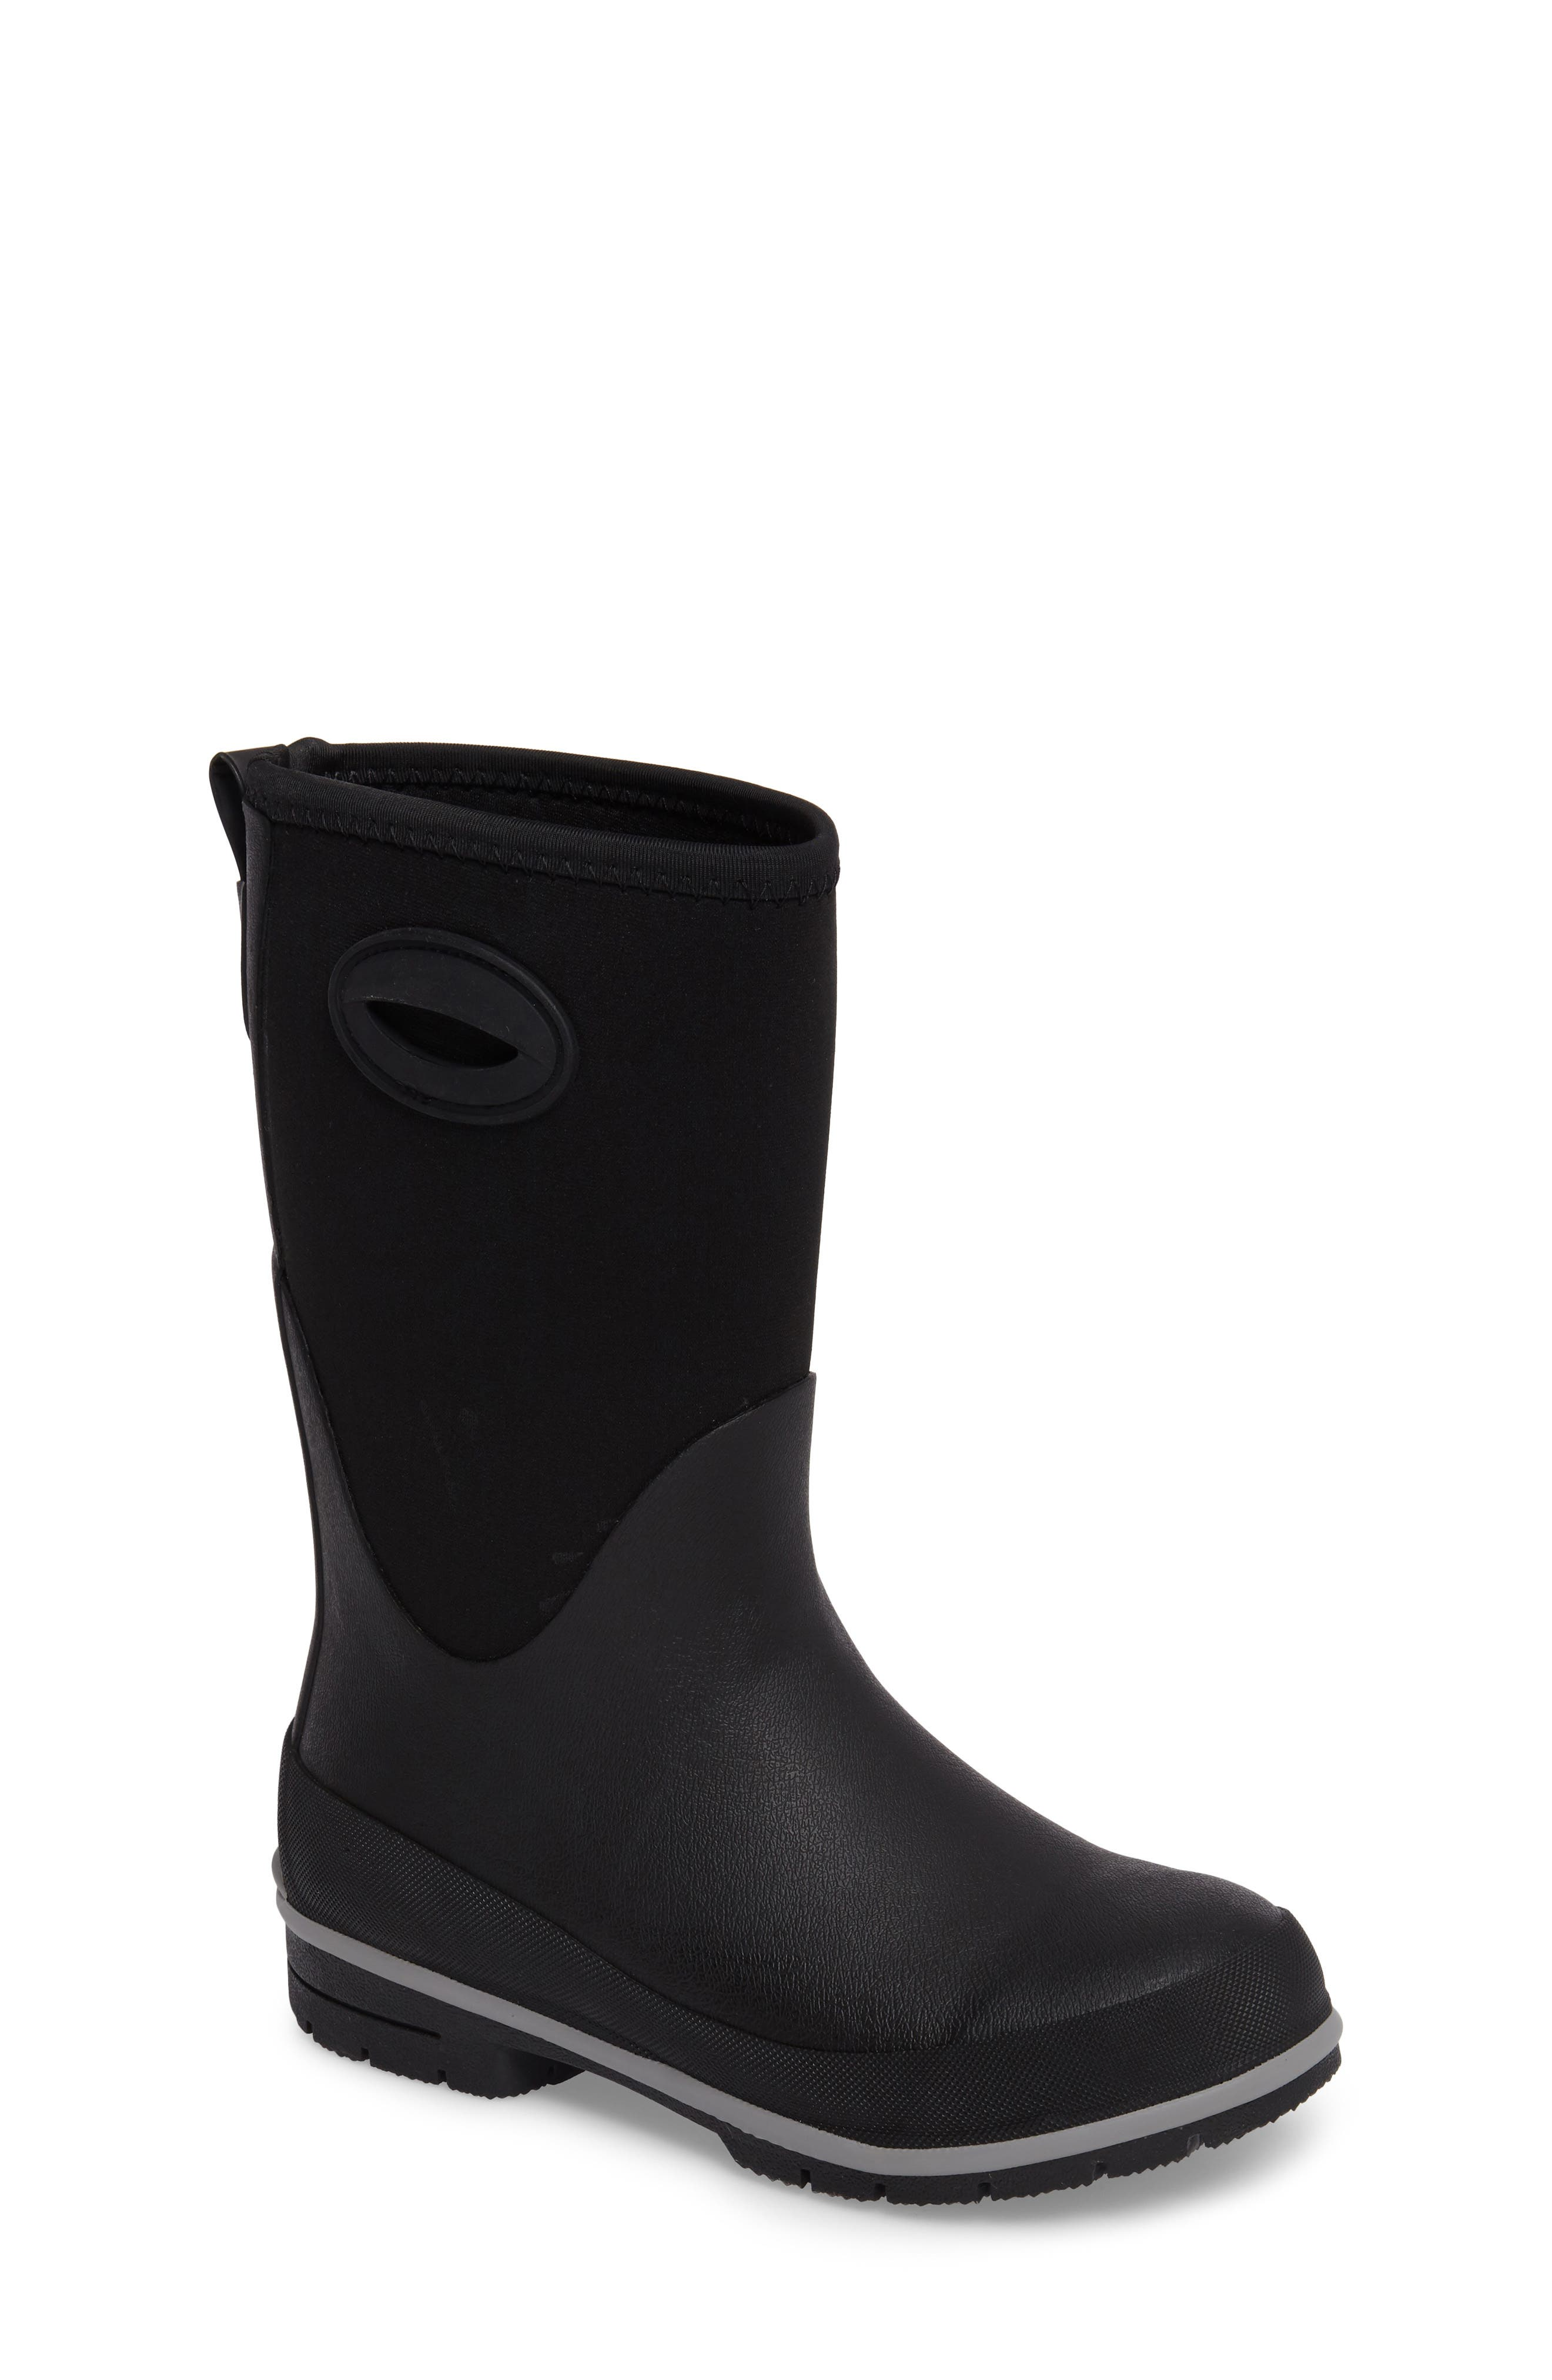 Neoprene Insulated Boot,                         Main,                         color, 001